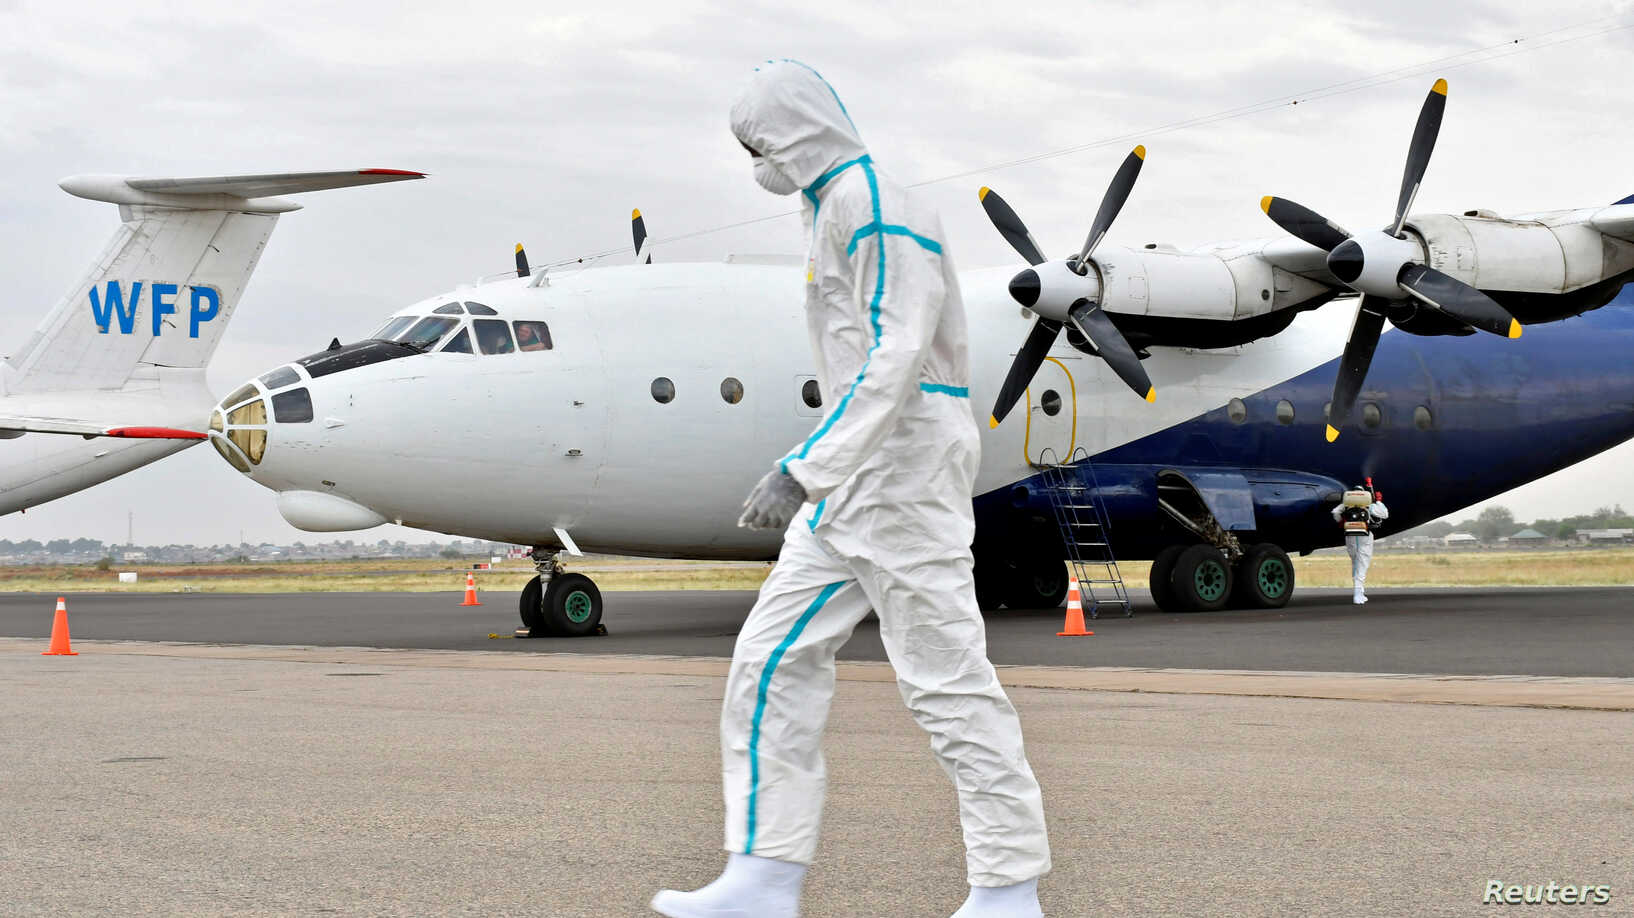 A member of a medical team wearing a protective suit cleans the airfield to prevent the spread of COVID-19 at the Juba International Airport in Juba, South Sudan, on April 5, 2020 (Reuters/VOA)